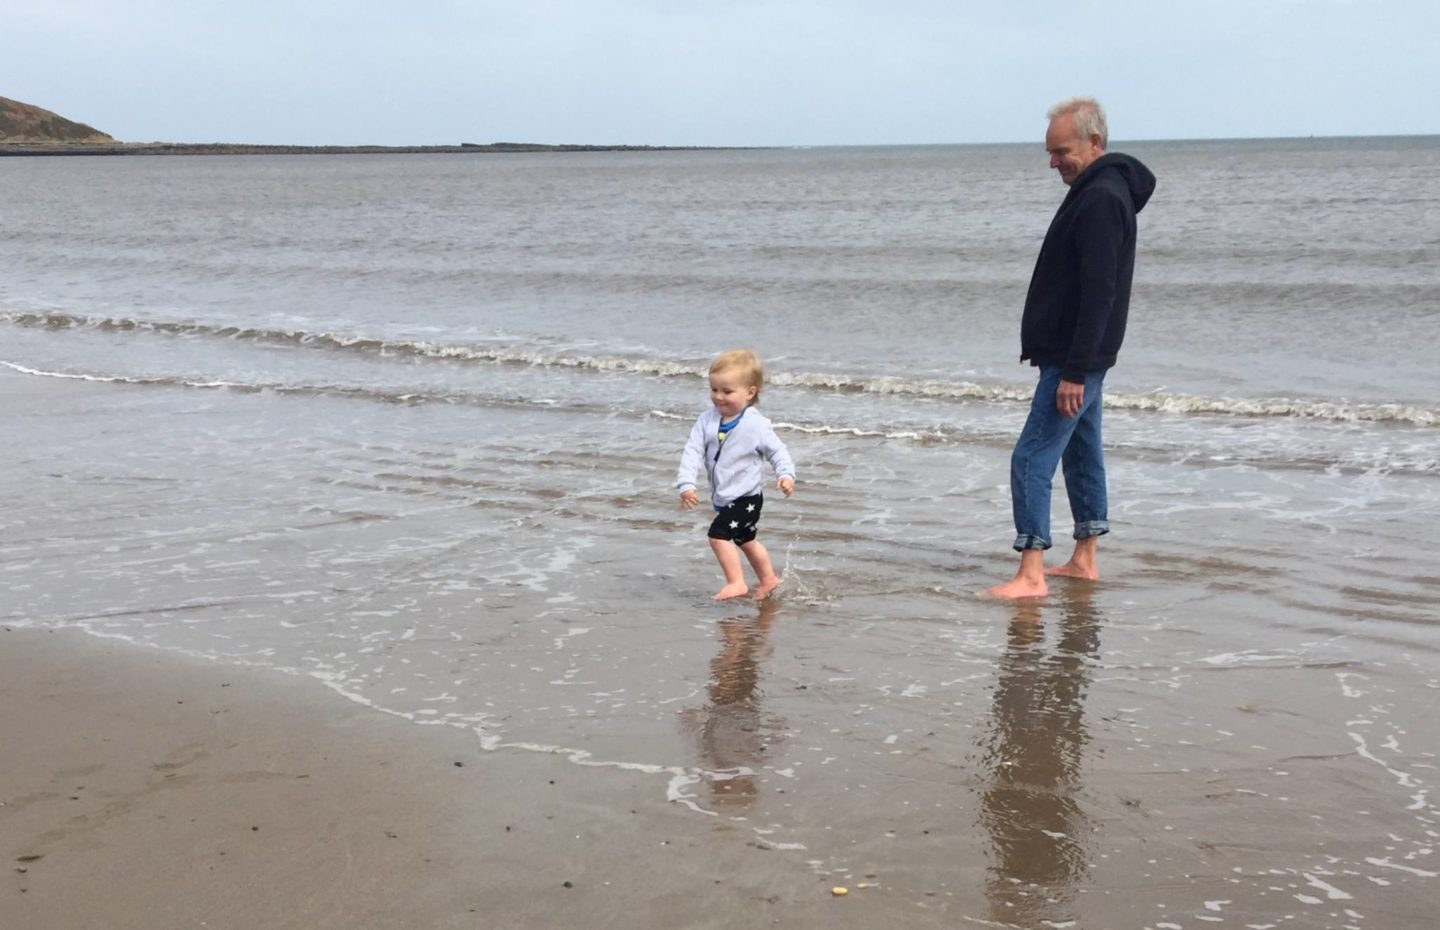 toddler and man on beach